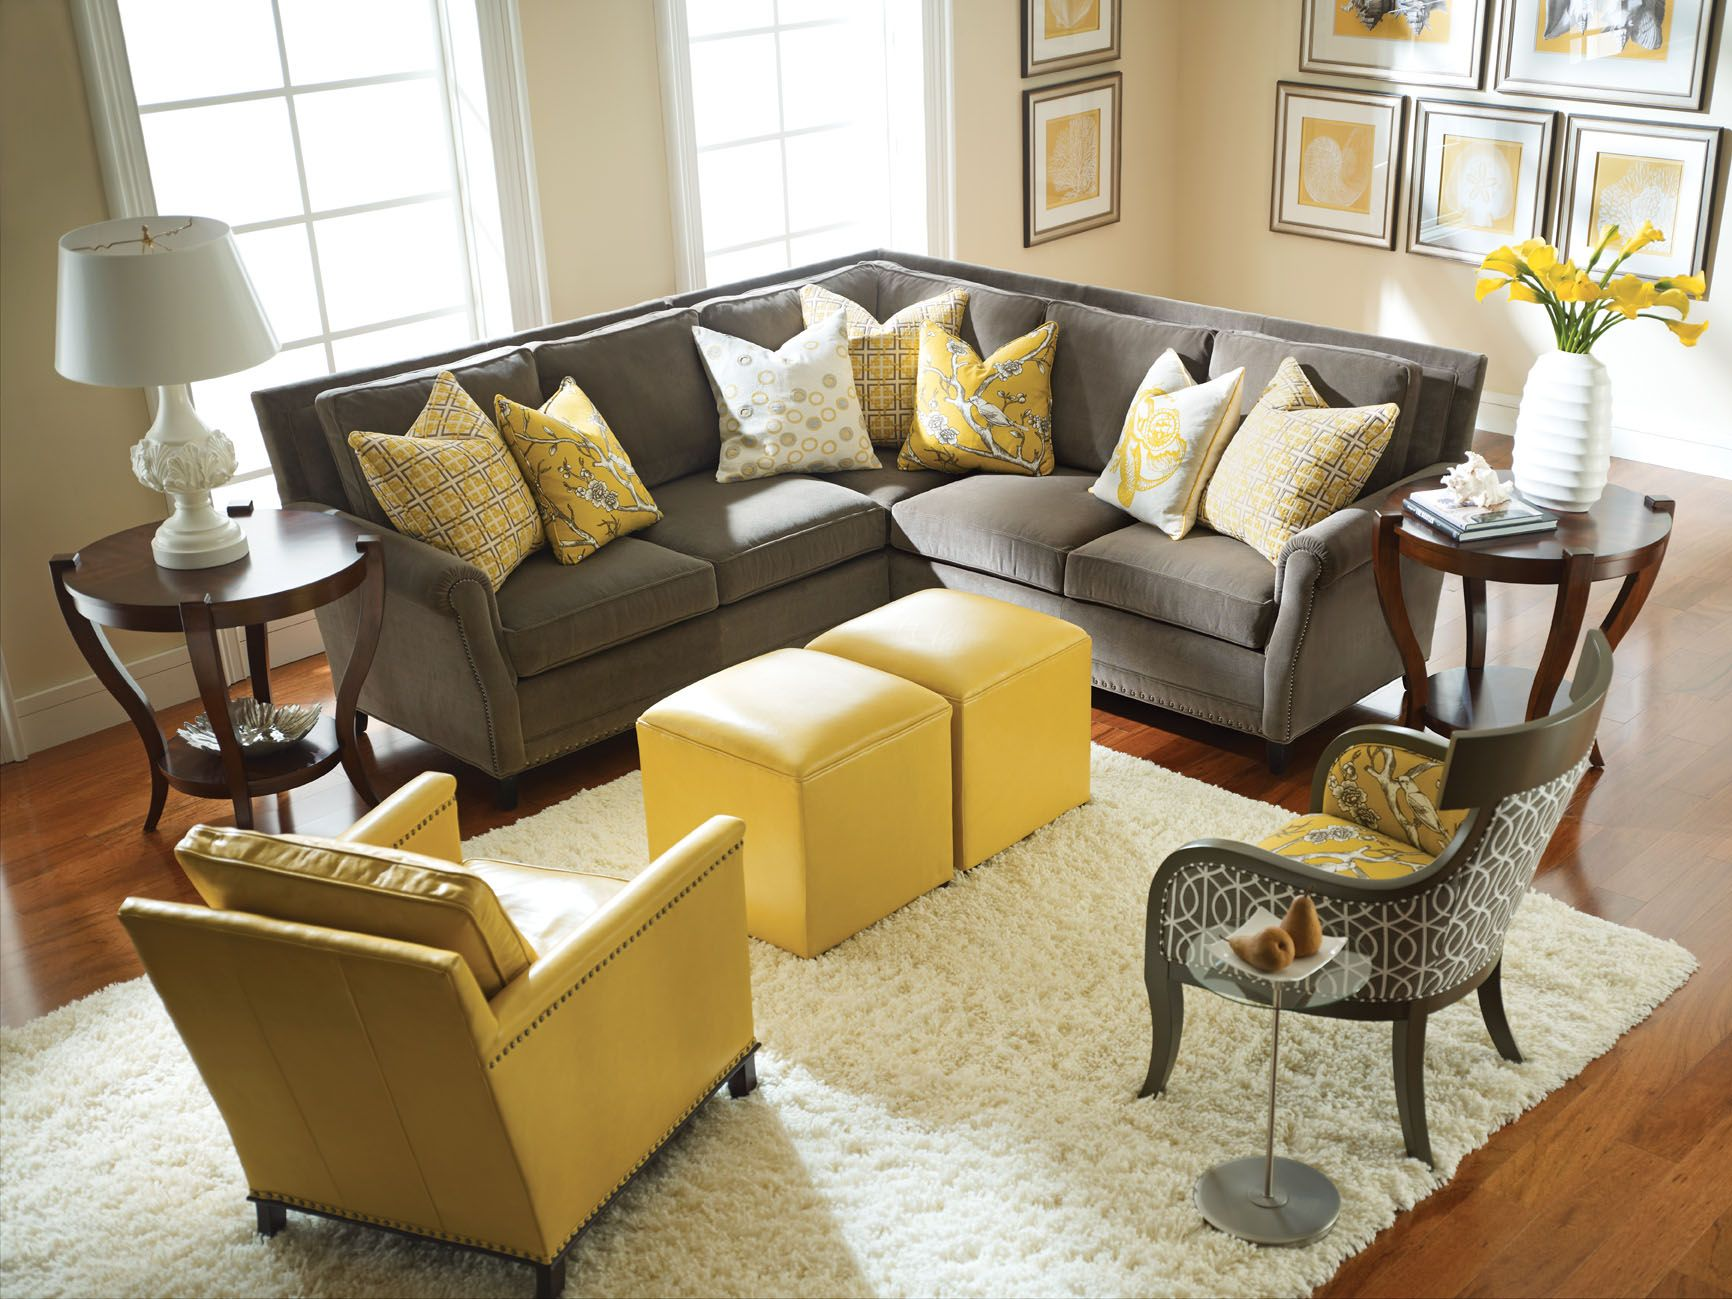 Blue and yellow living room with brown couch - Grey Livingroom Best 25 Gray Couch Decor Ideas Only On Pinterest Gray Couch